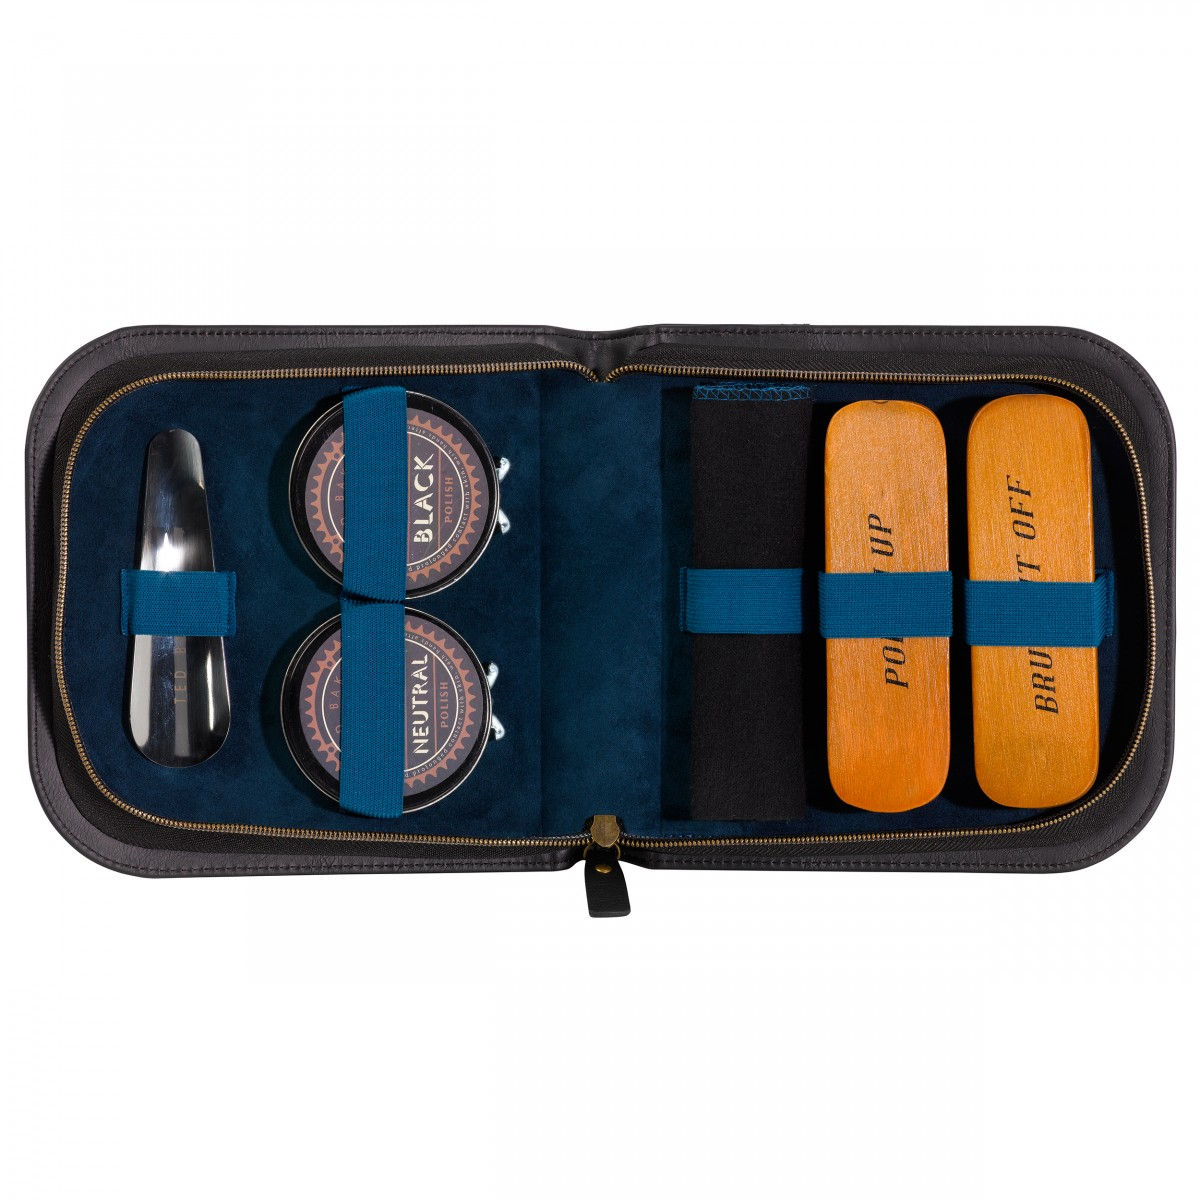 ted baker shoe shine kit mens accessories fathers day. Black Bedroom Furniture Sets. Home Design Ideas